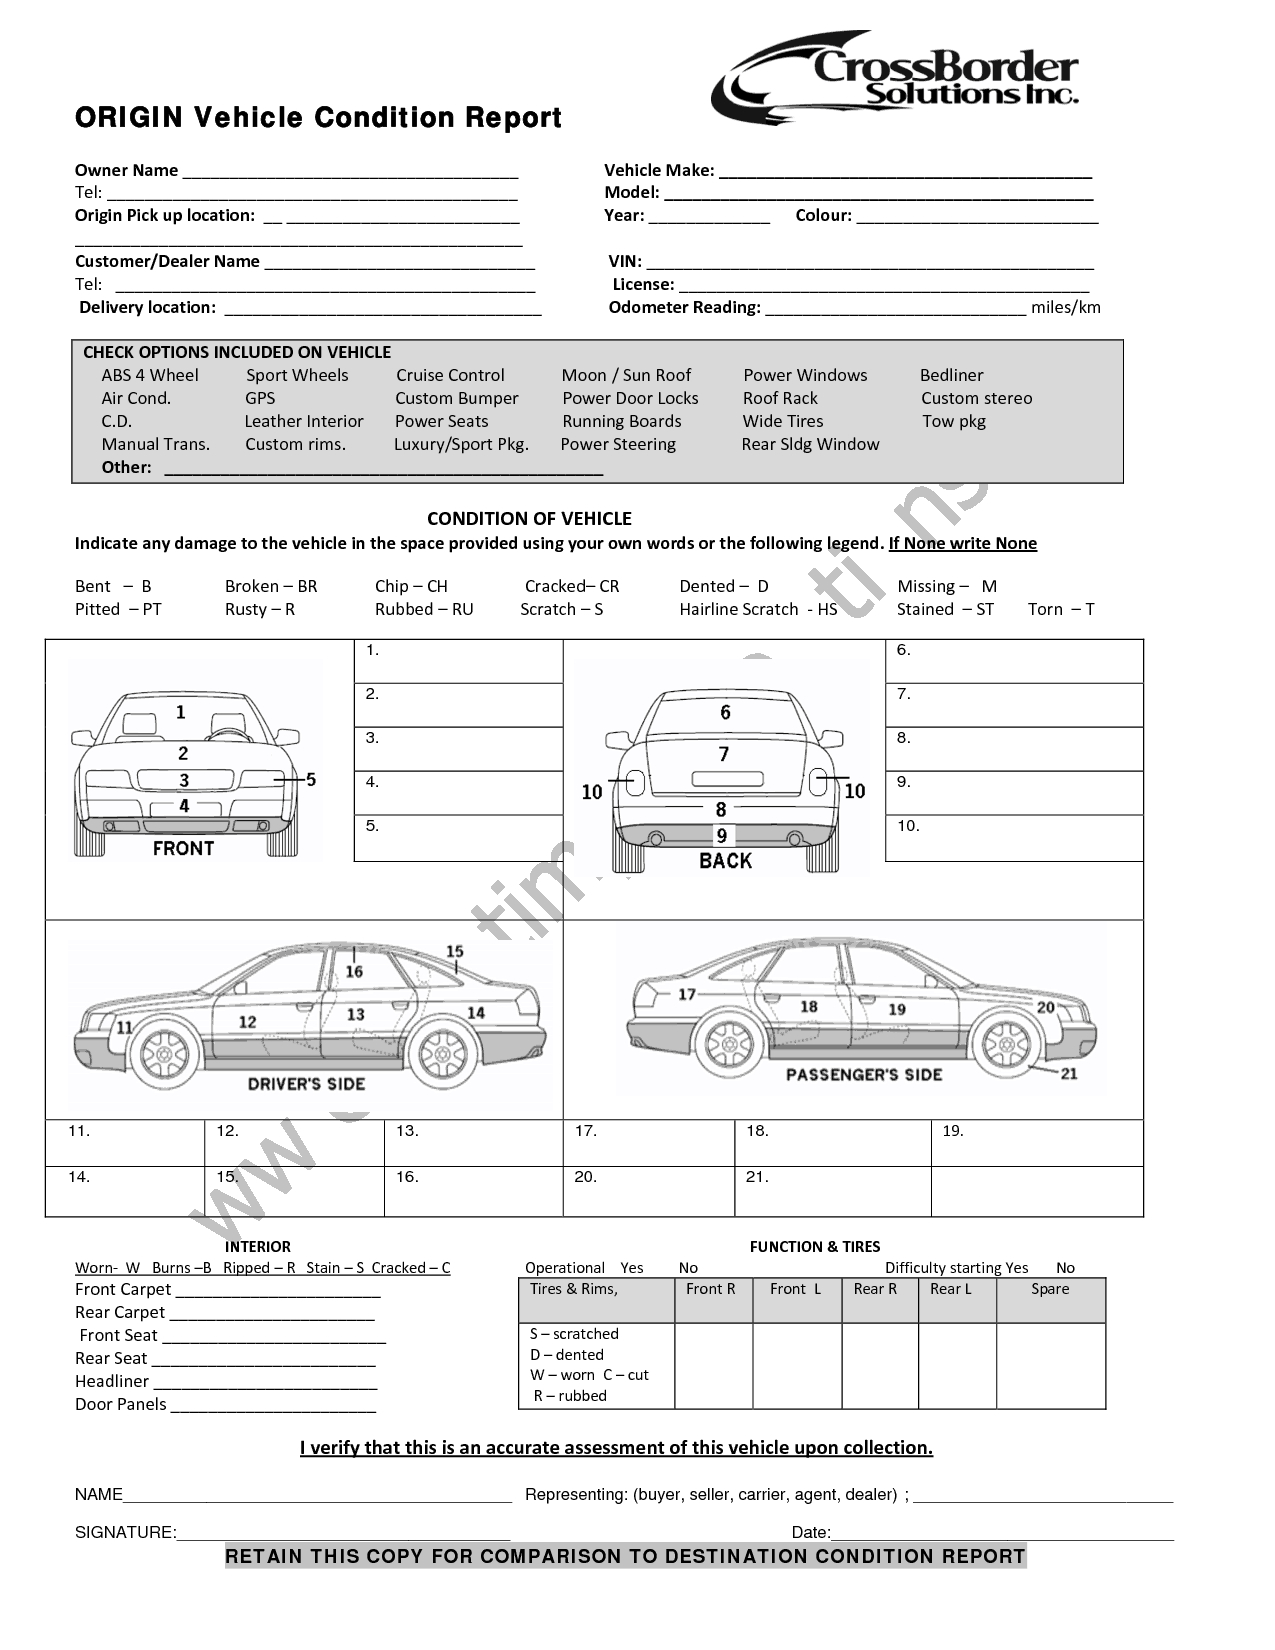 5+ Vehicle Condition Reports - Word Excel Templates Throughout Truck Condition Report Template